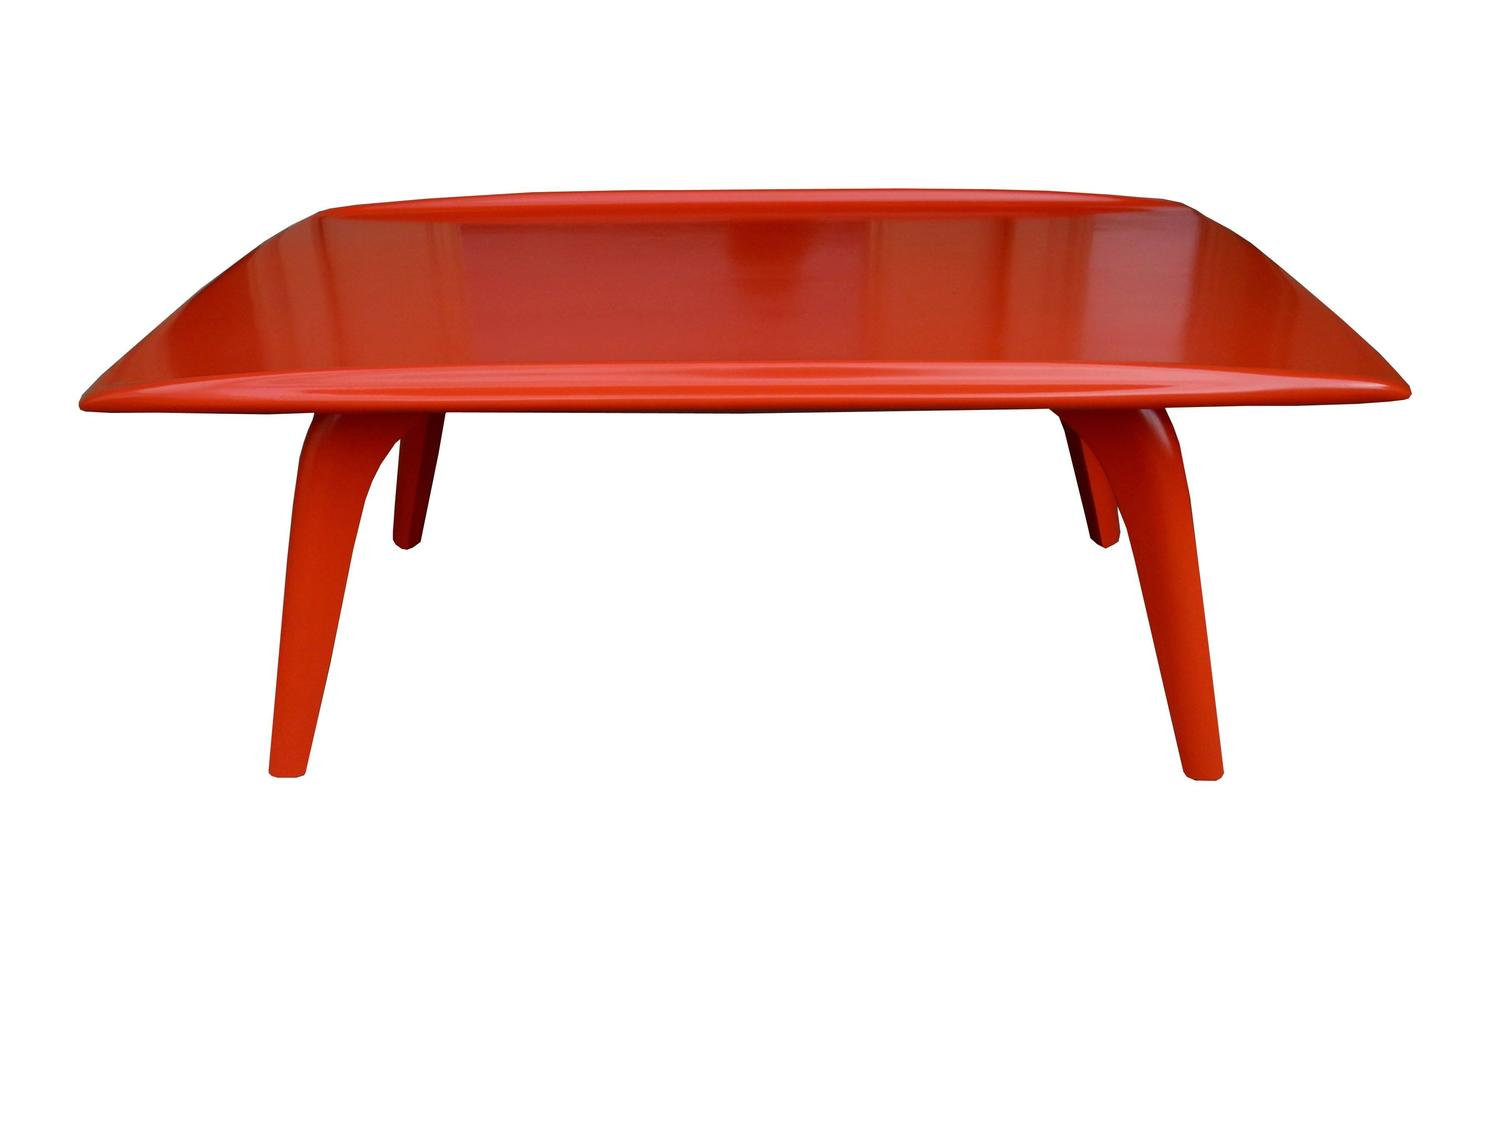 Orange Red Mid Century Modern Coffee Table By Heywood Wakefield 1950s At 1stdibs